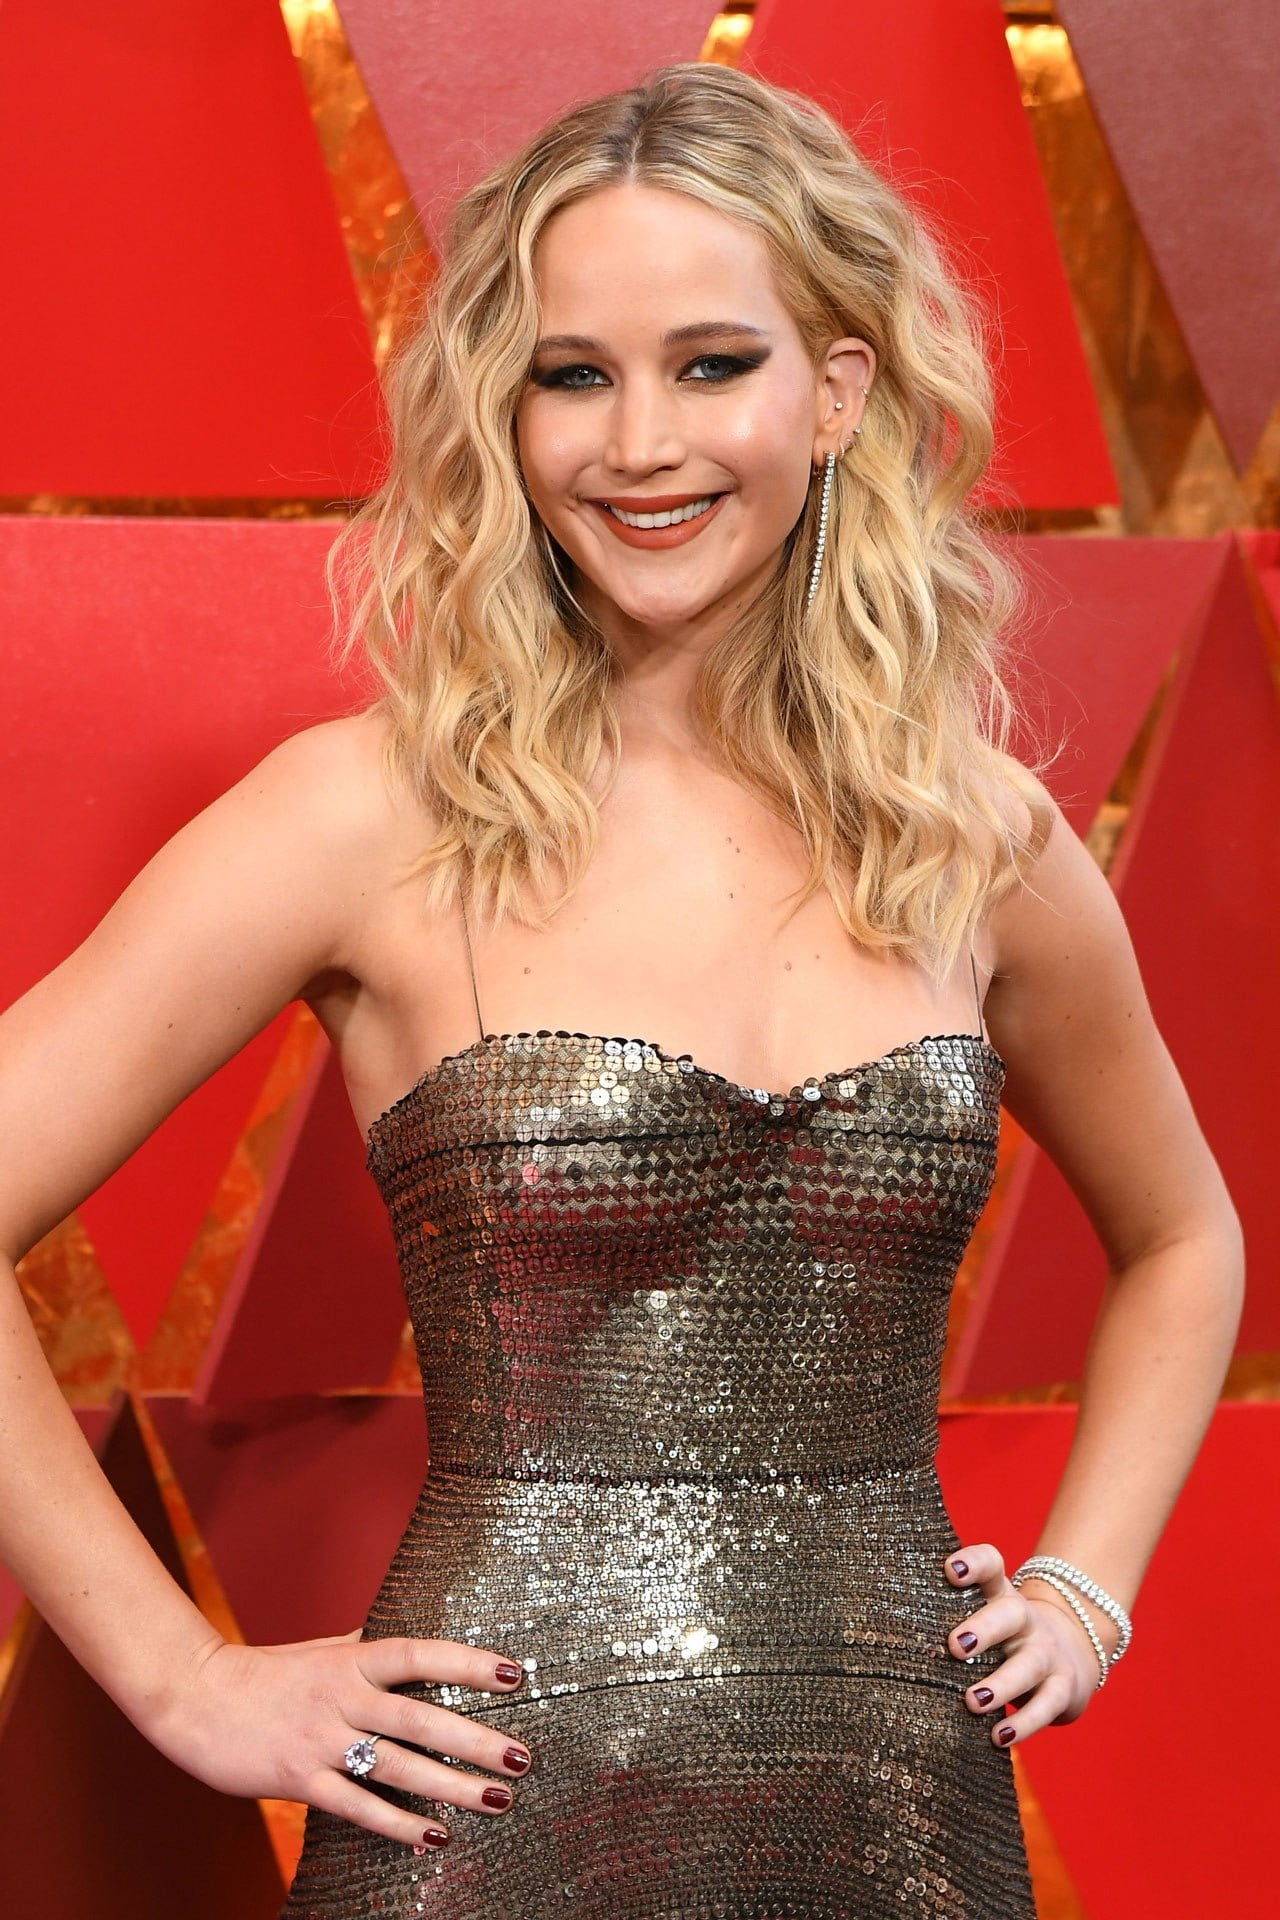 Jennifer Lawrence is engaged to Cooke Maroney!